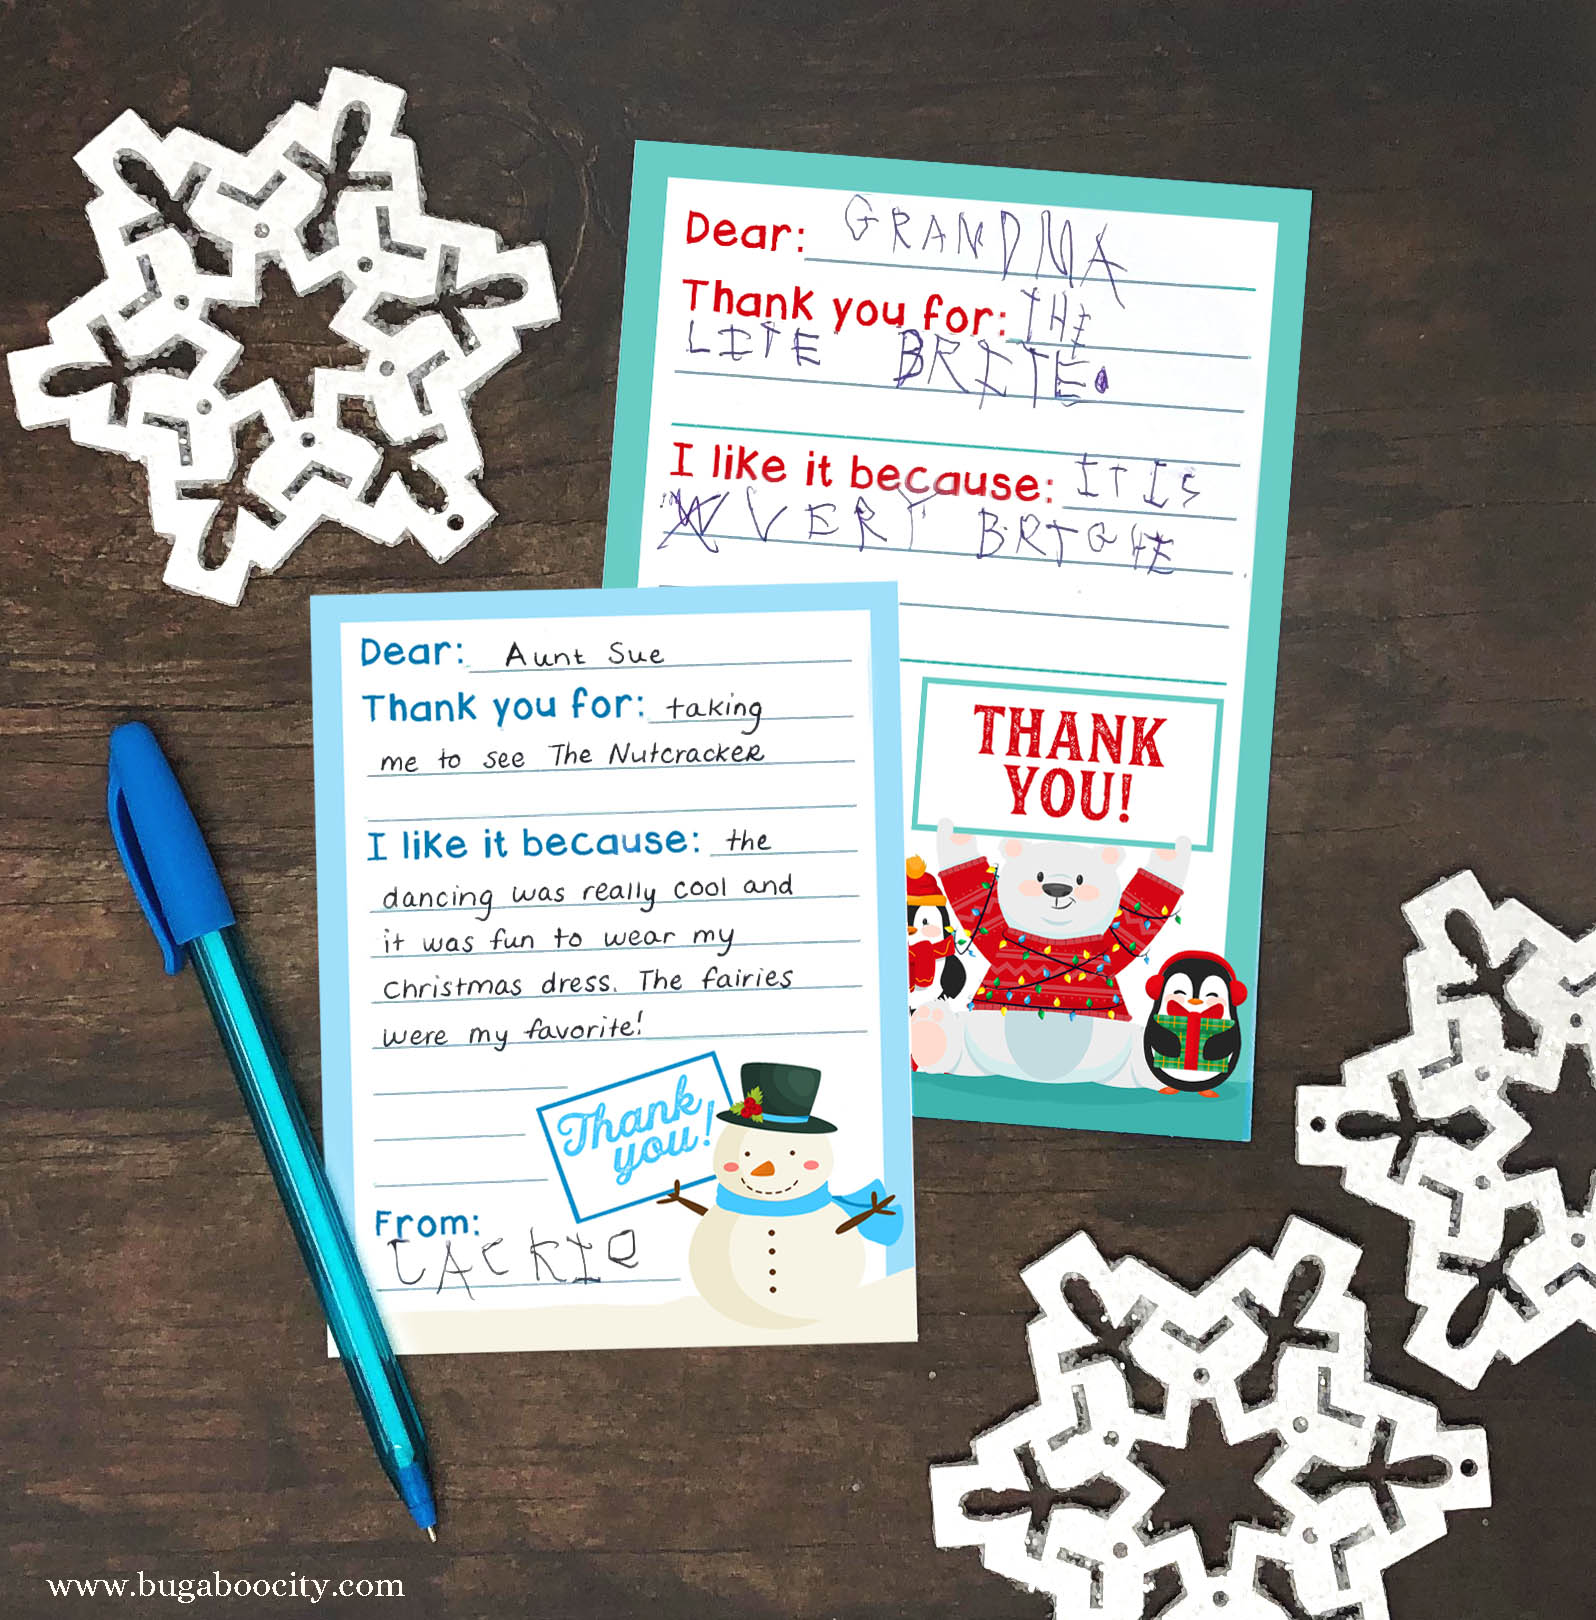 graphic about Christmas Thank You Cards Printable Free named Cost-free Printable Vacation Thank Your self Playing cards for Young children - Creating